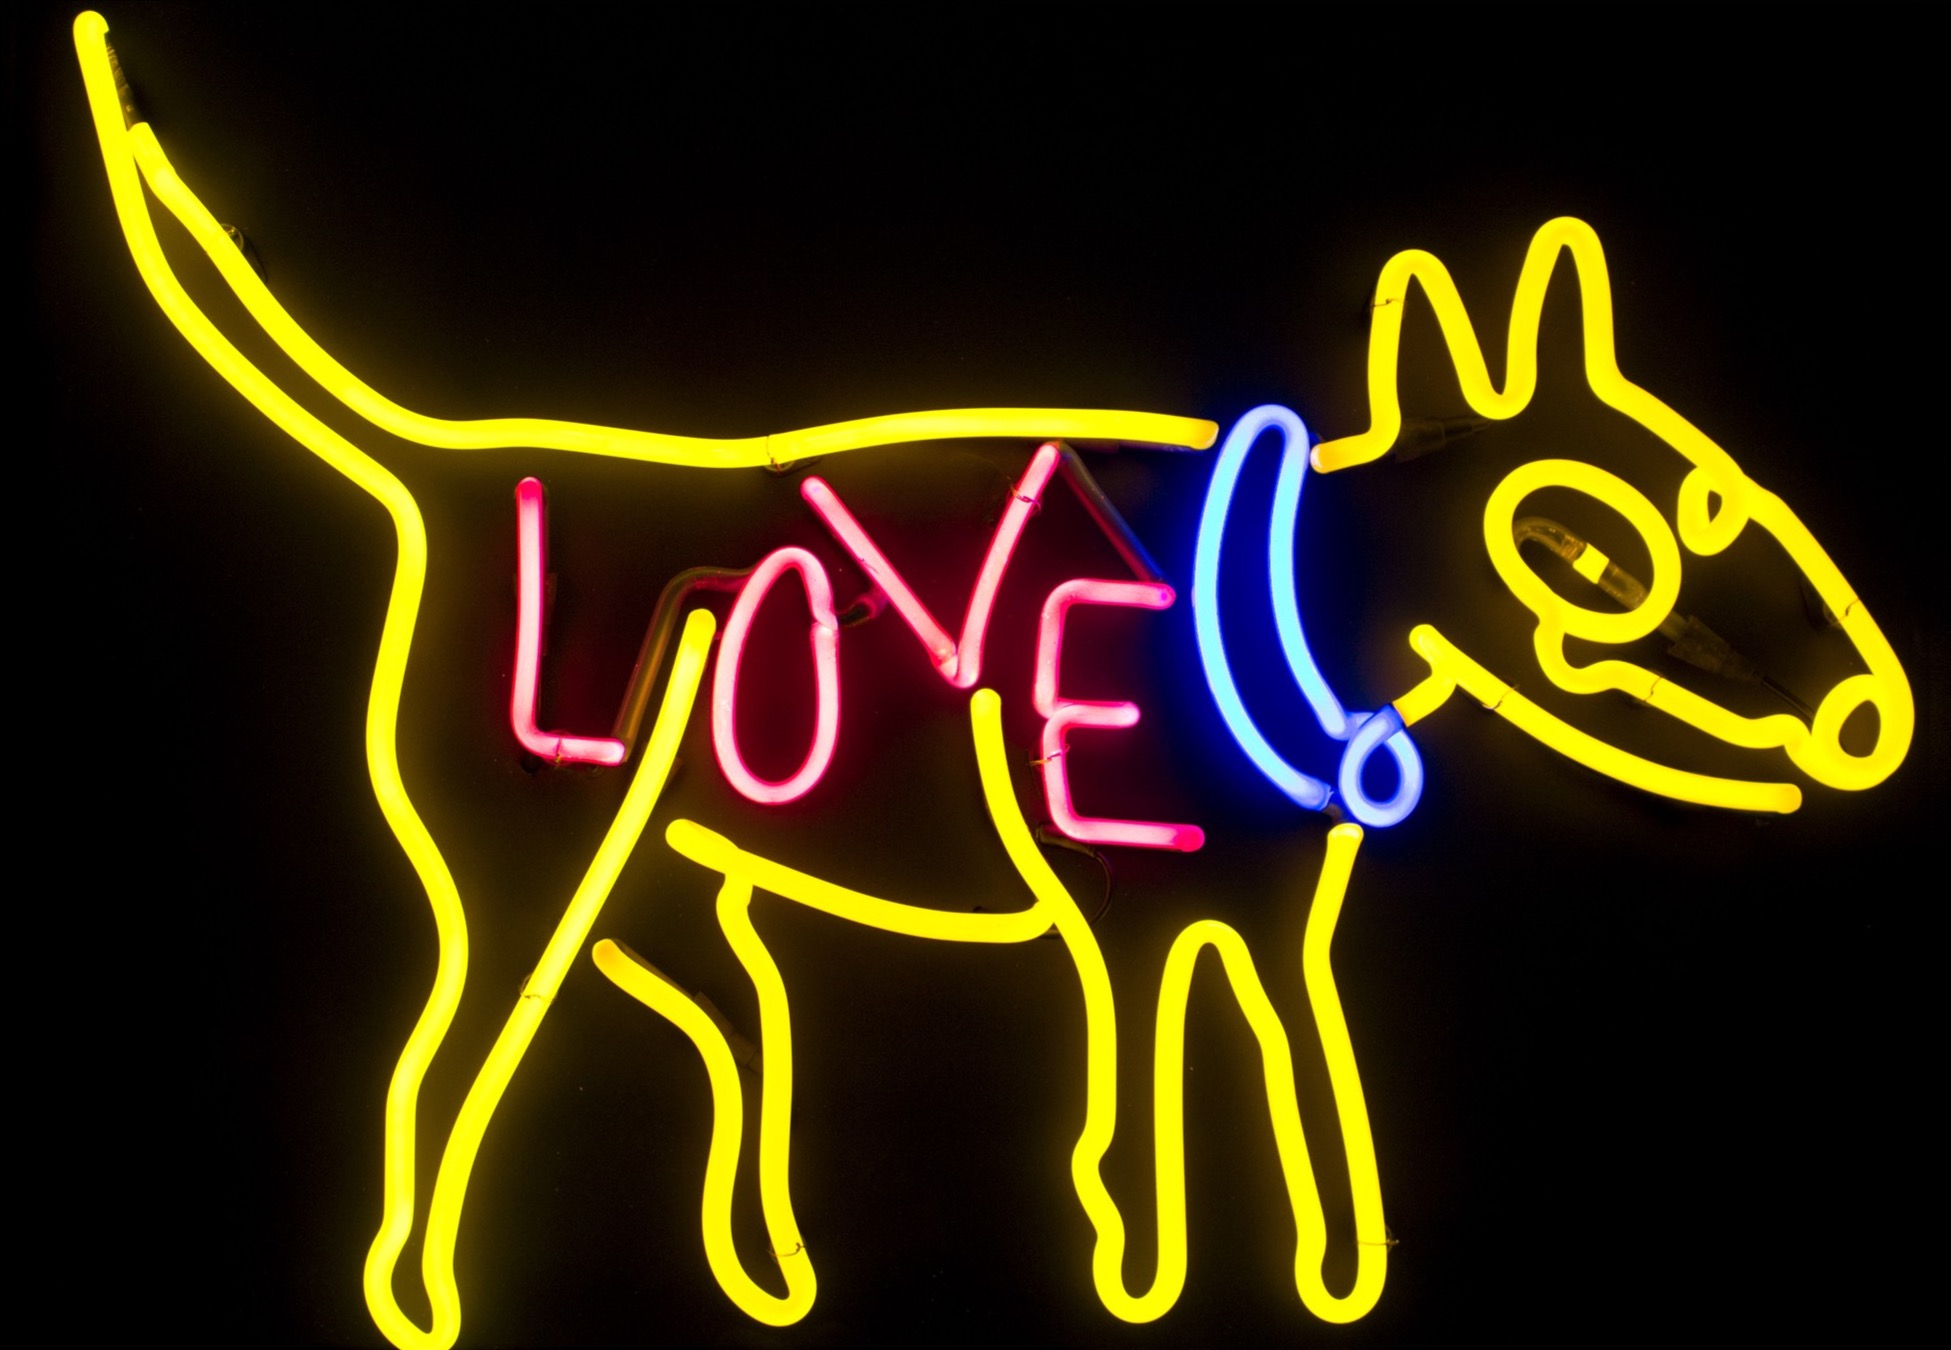 Lostdog Neon Sculpture